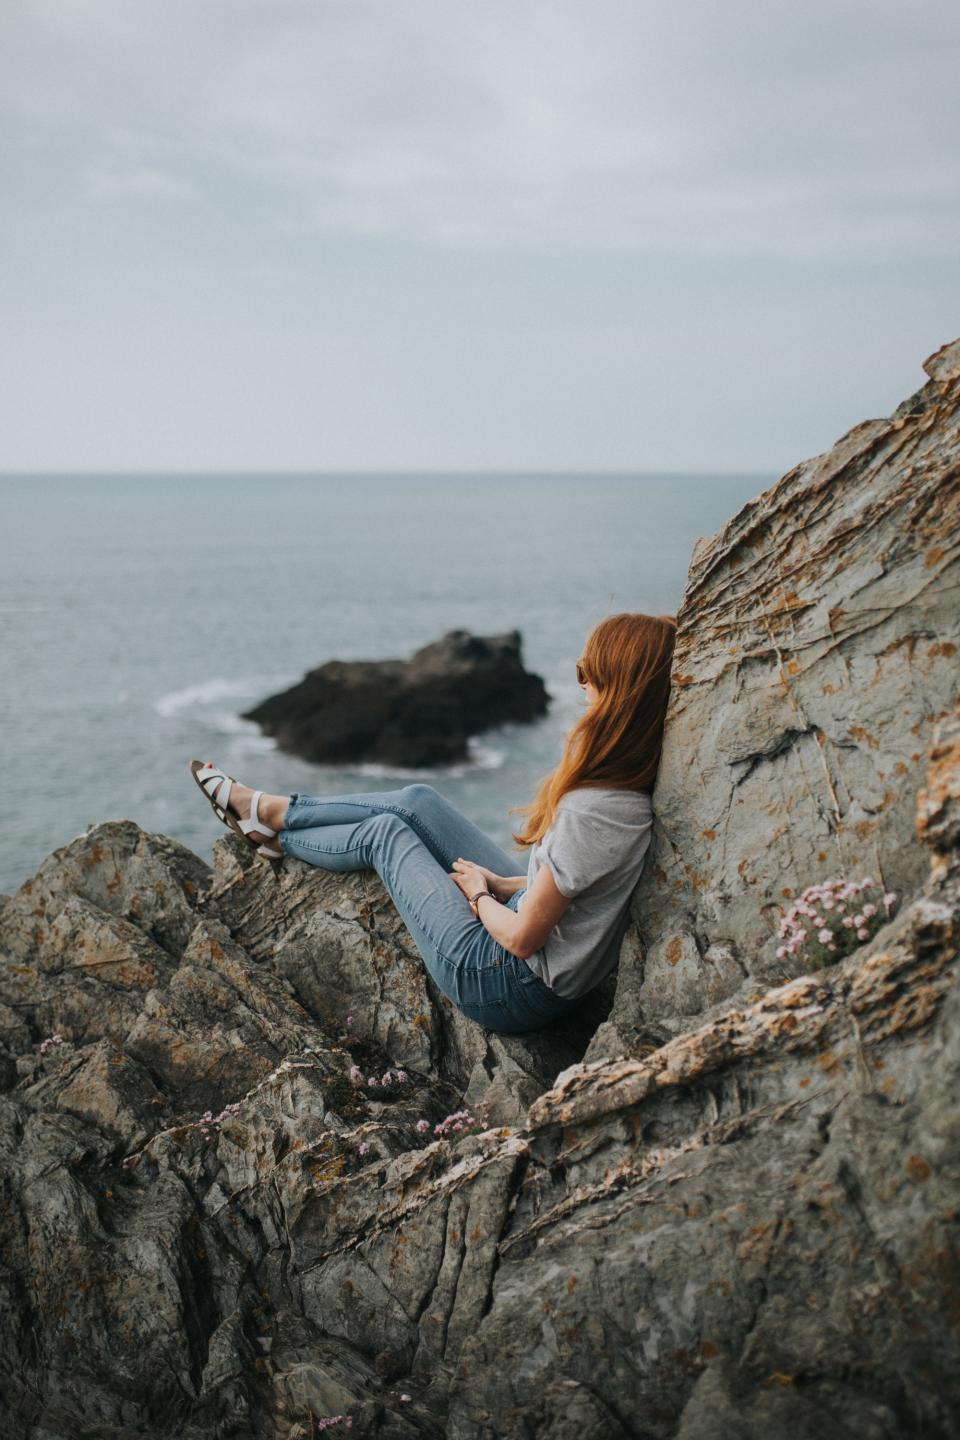 sea ocean water waves nature rocks hill cliff people girl sitting alone adventure outdoor relax view